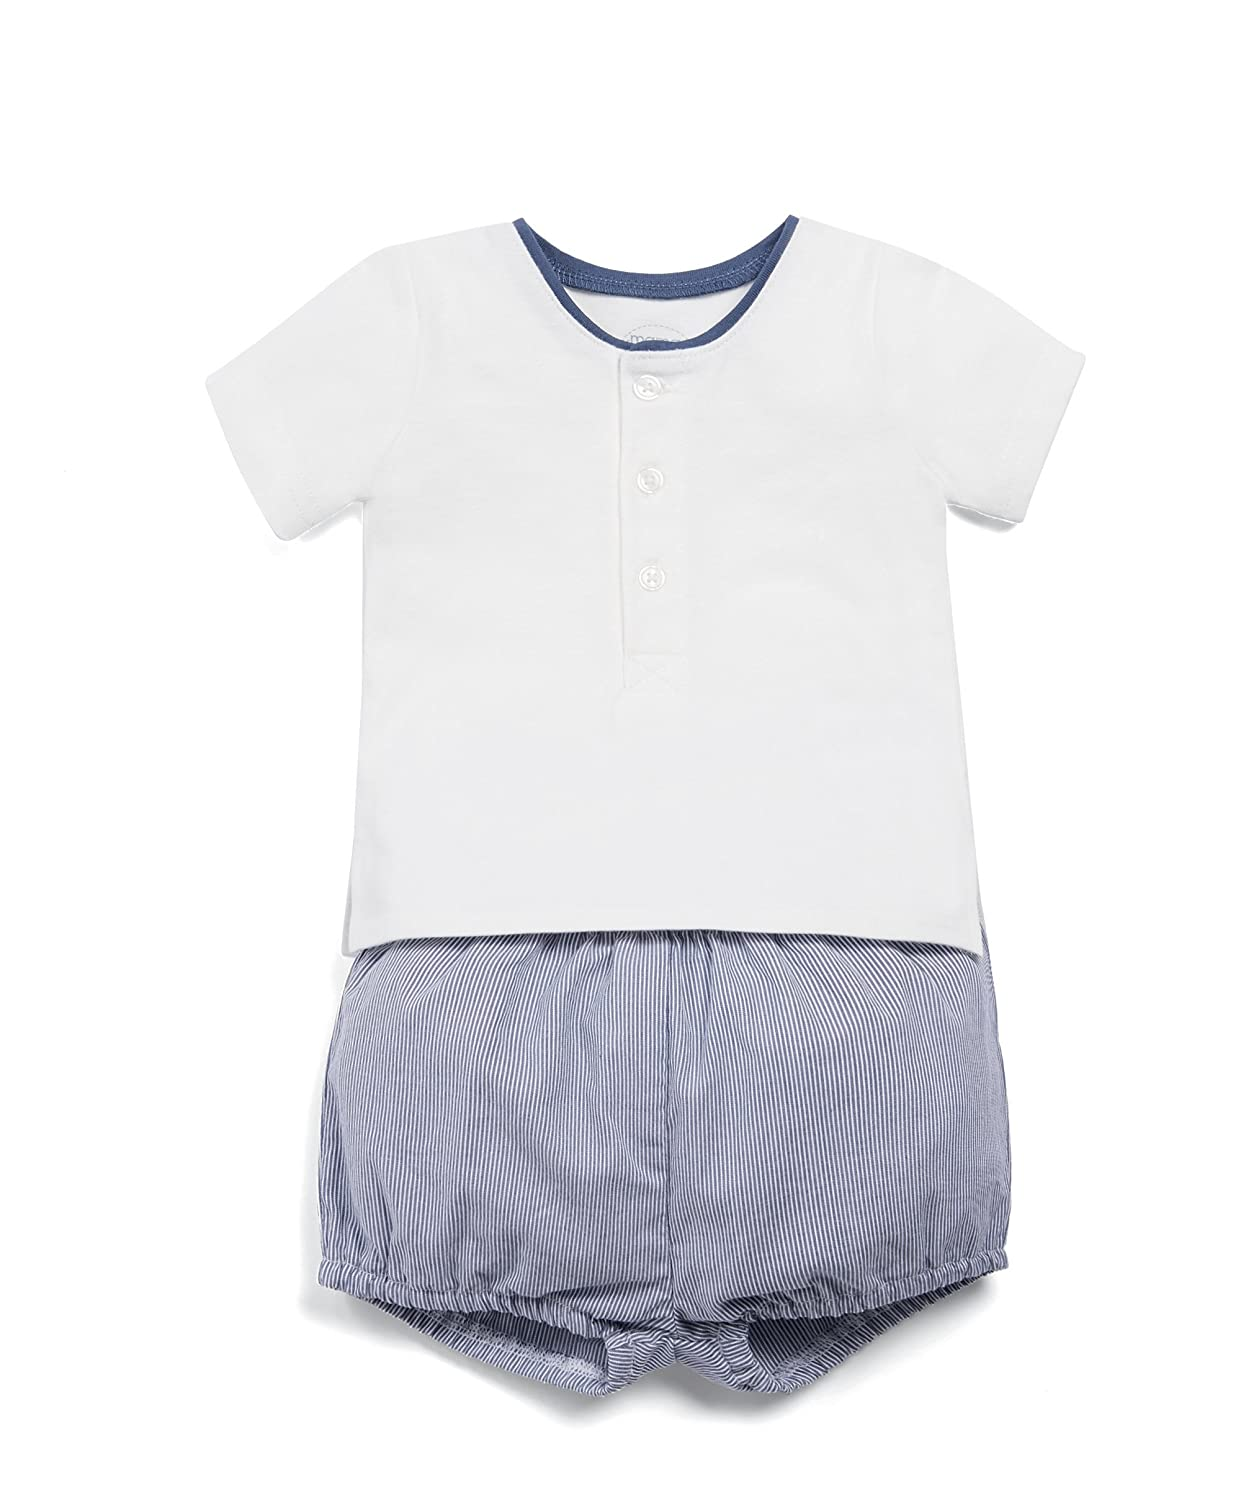 Mamas & Papas Baby Boys' Tee and Seersucker Short Set Clothing